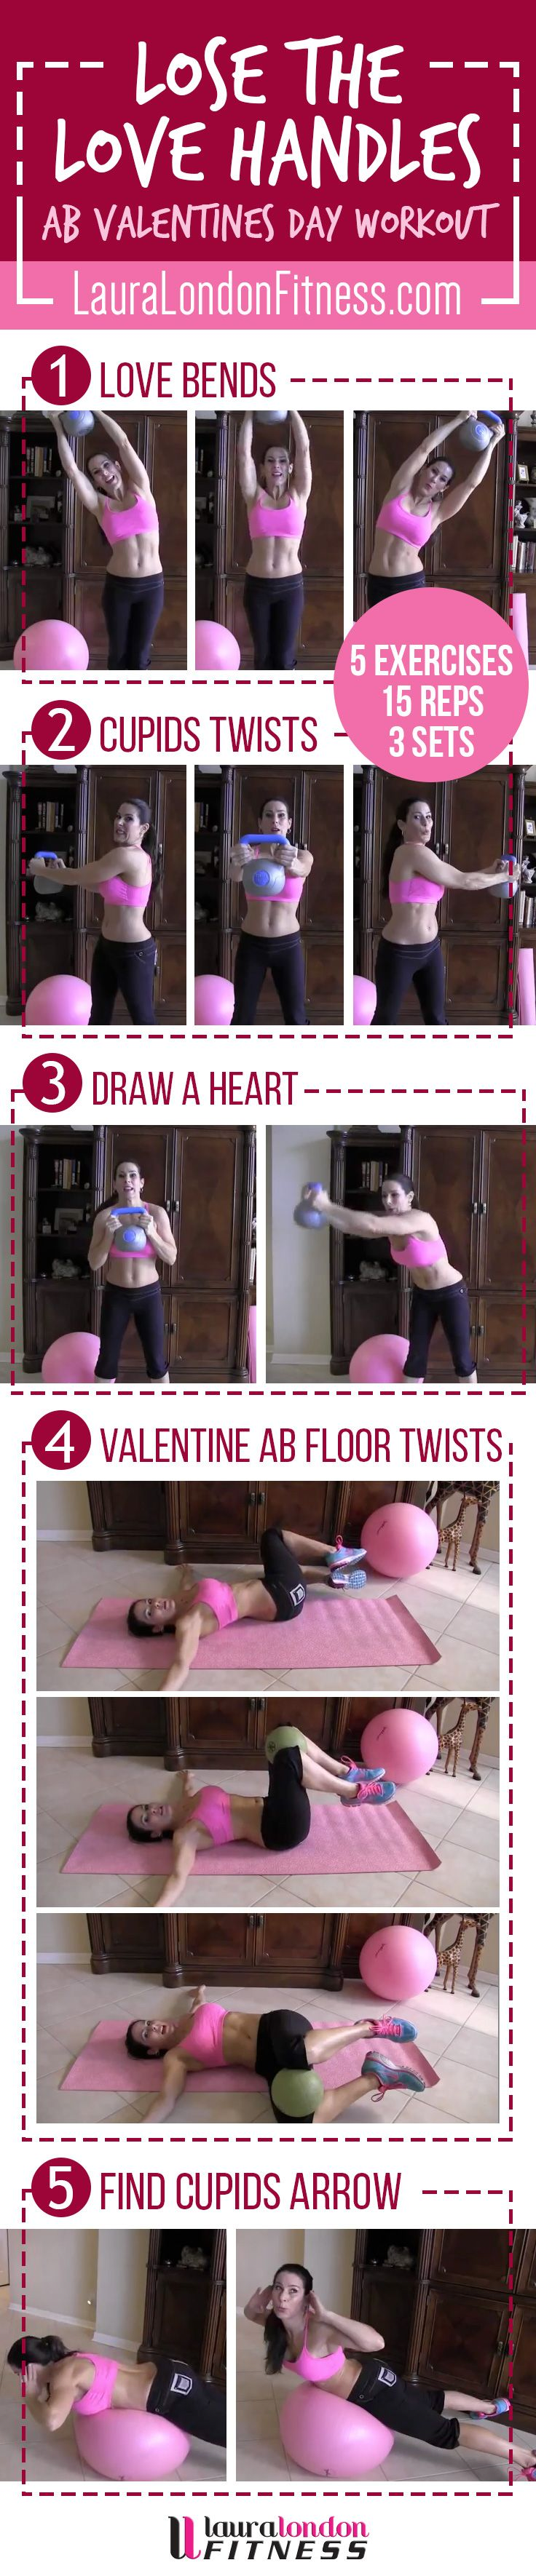 Lose the Love Handles, muffin top what ever you call that extra weight around your middle.  Let's crush it with this workout.  Share and Re-PIn too.  #lauralondonfitness